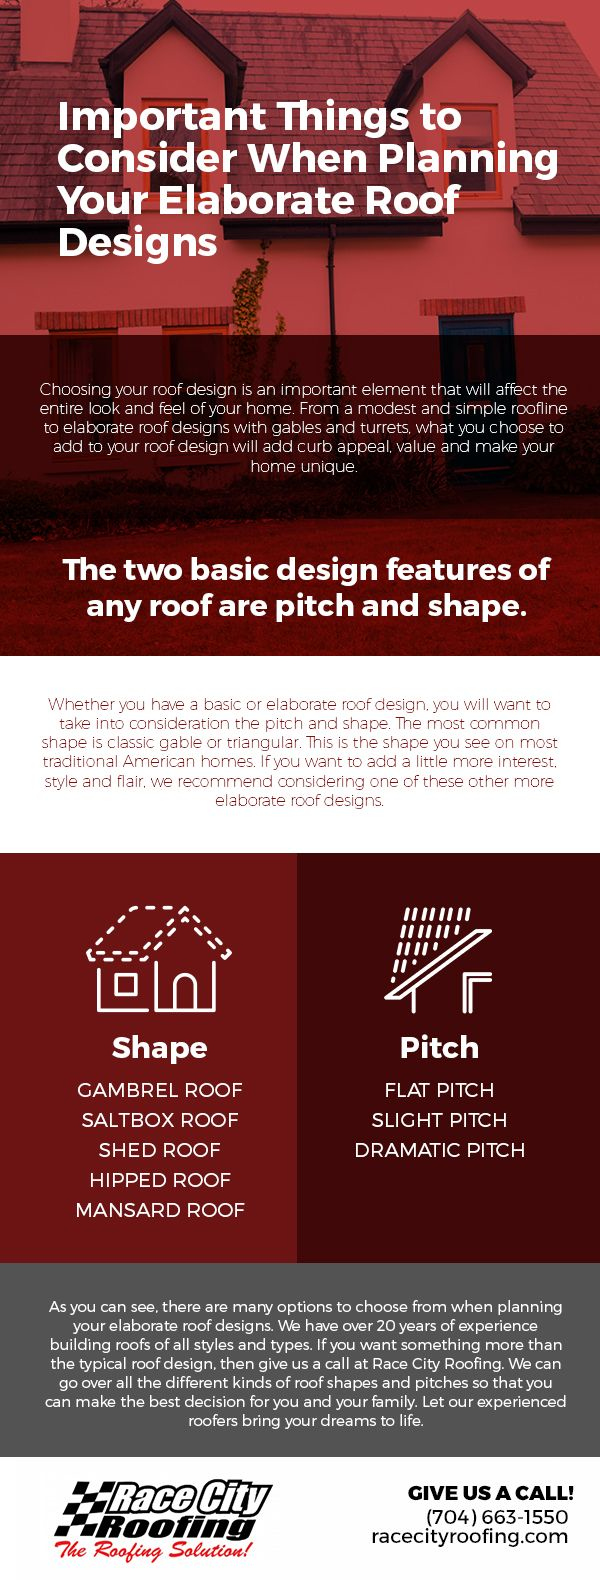 Important Things to Consider When Planning Your Elaborate Roof Designs [infographic]